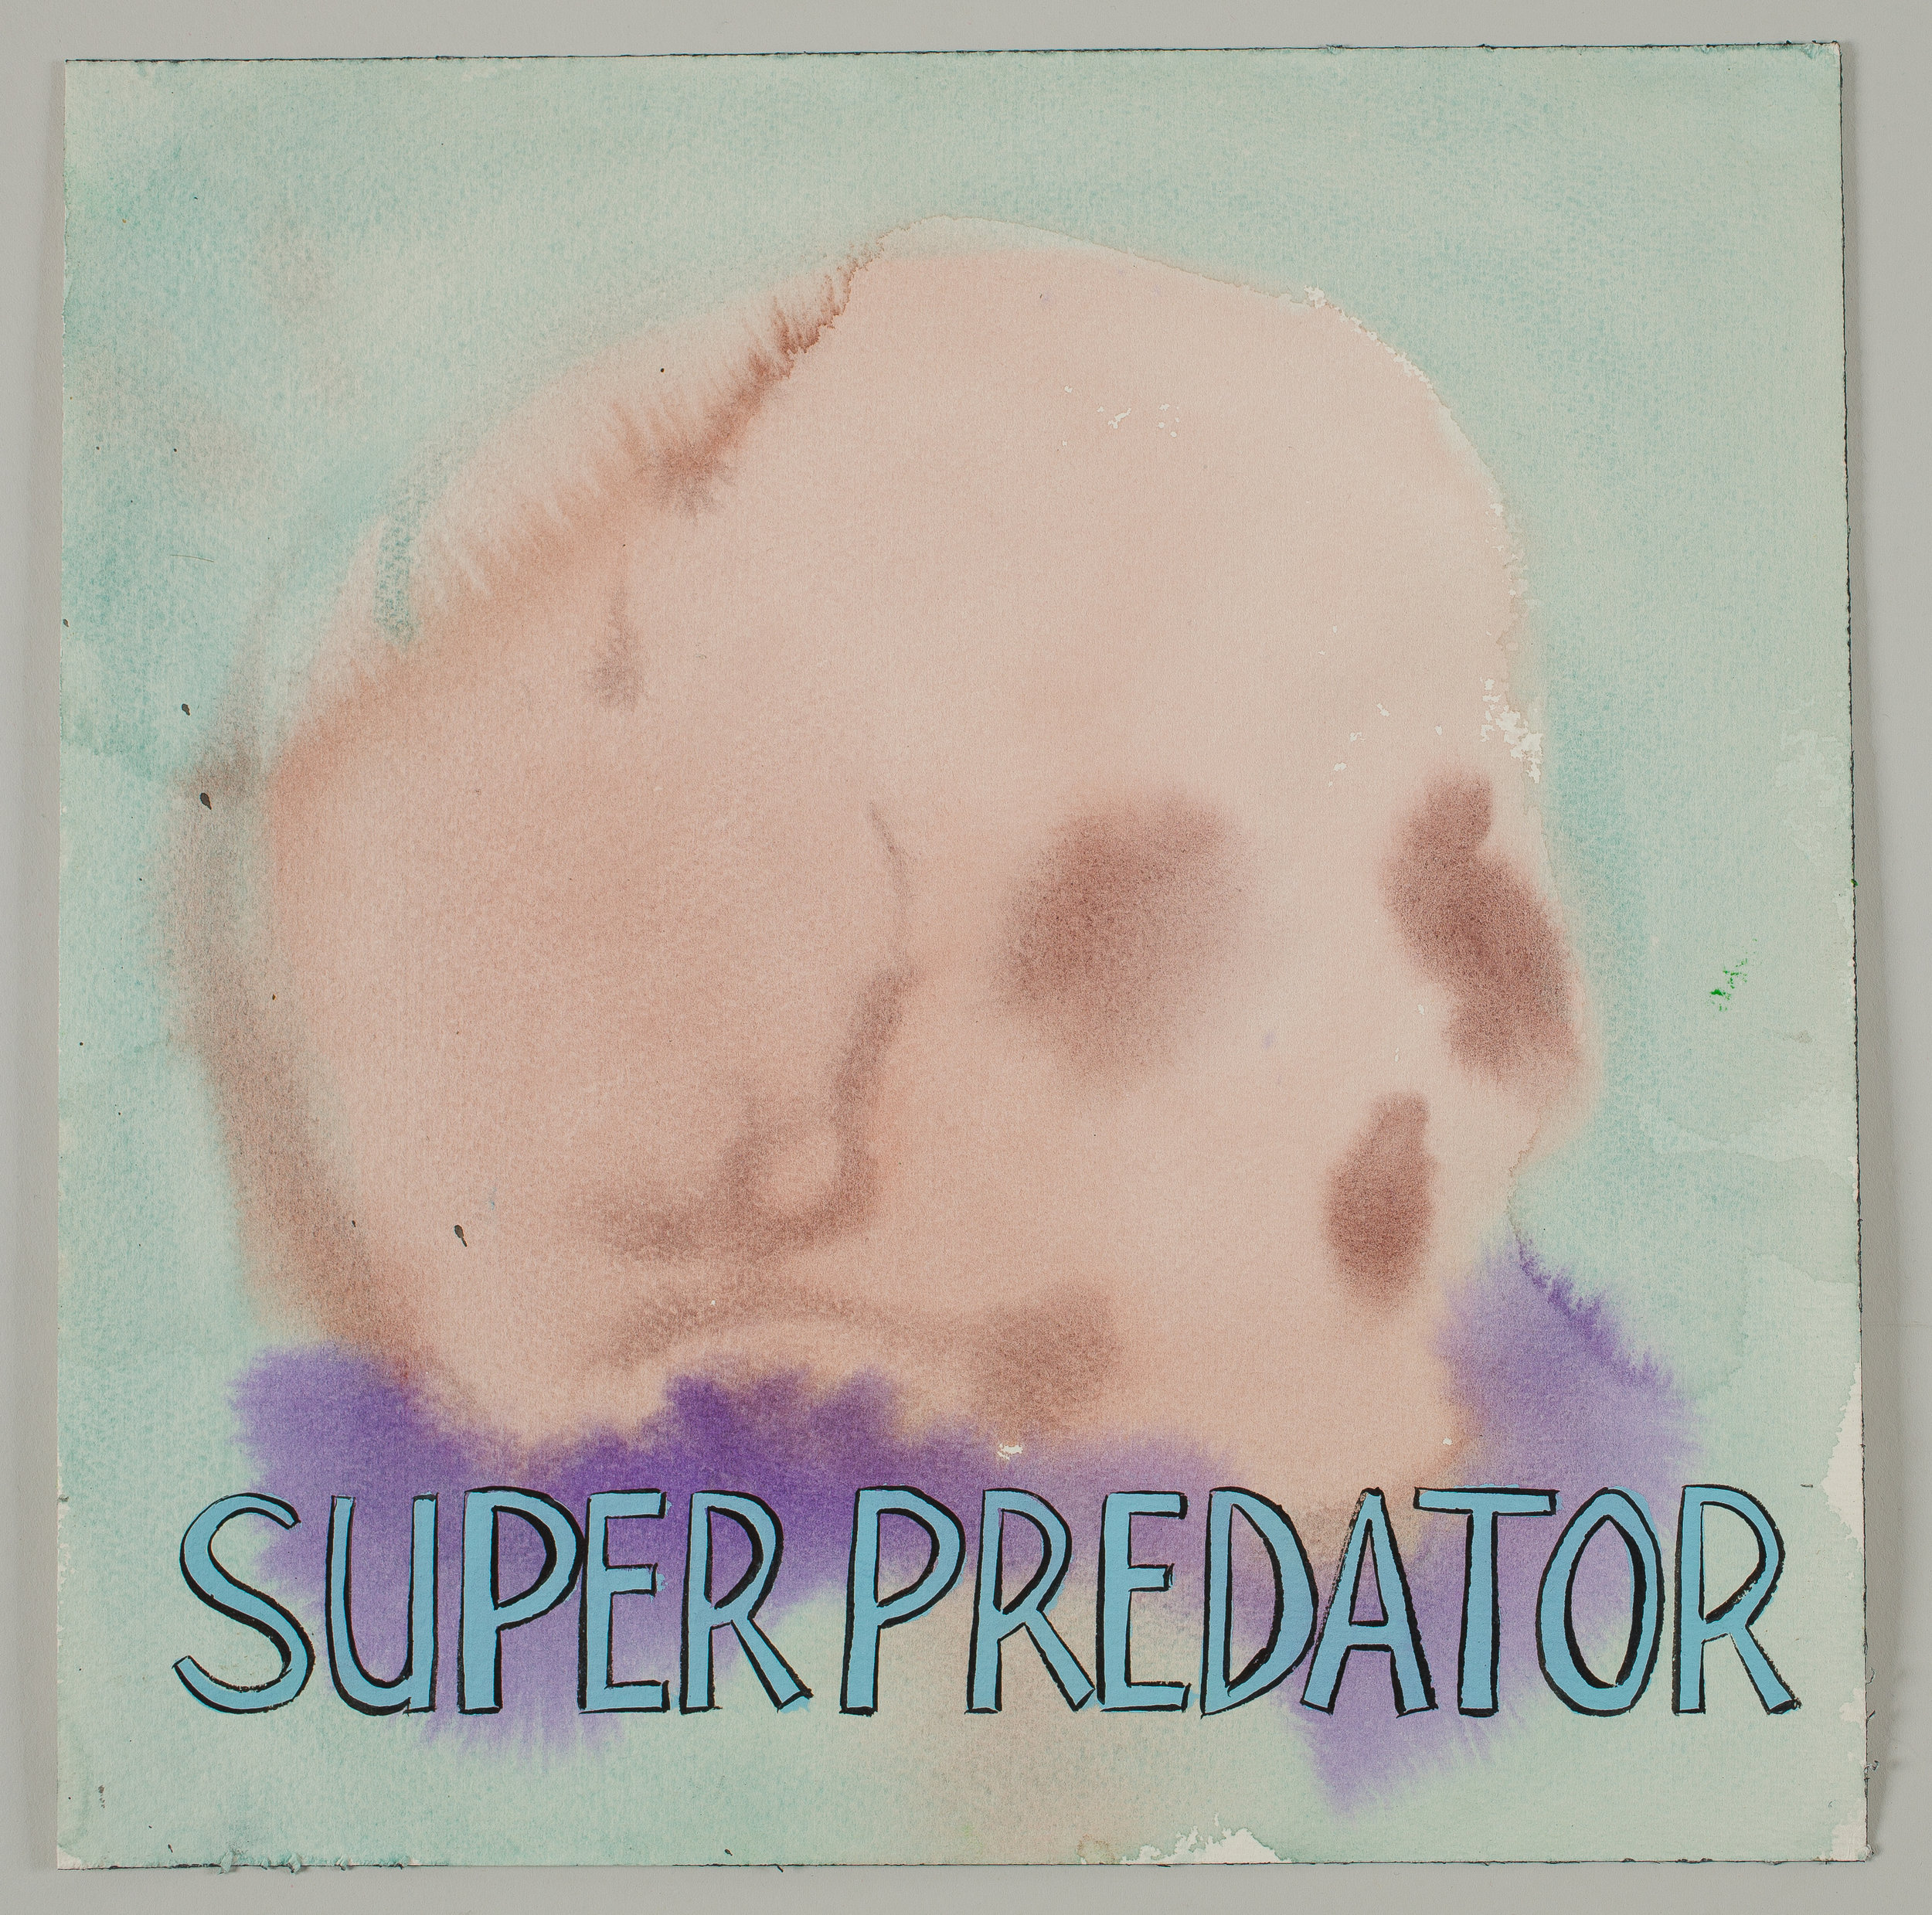 Super Predator  2016 watercolor, gouache and ink on paper